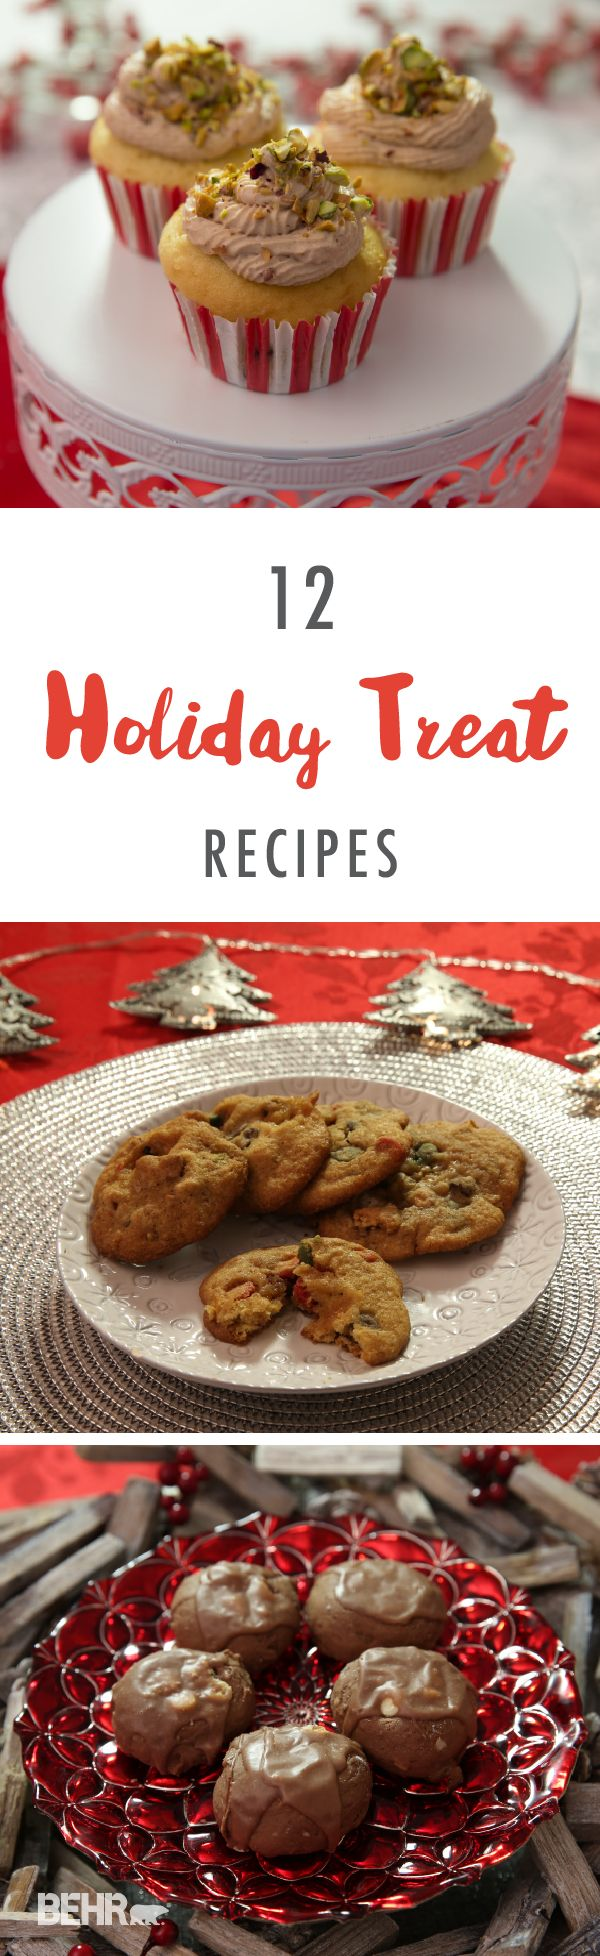 This collection of winter dessert recipes is perfect for your next holiday party. Impress your friends and family with tasty recipes like s'mores stuffed delight cookies, Italian chocolate spice cookies, and cannoli stuffed cupcakes. This holiday season, bring all of your loved ones together with food and fun times.